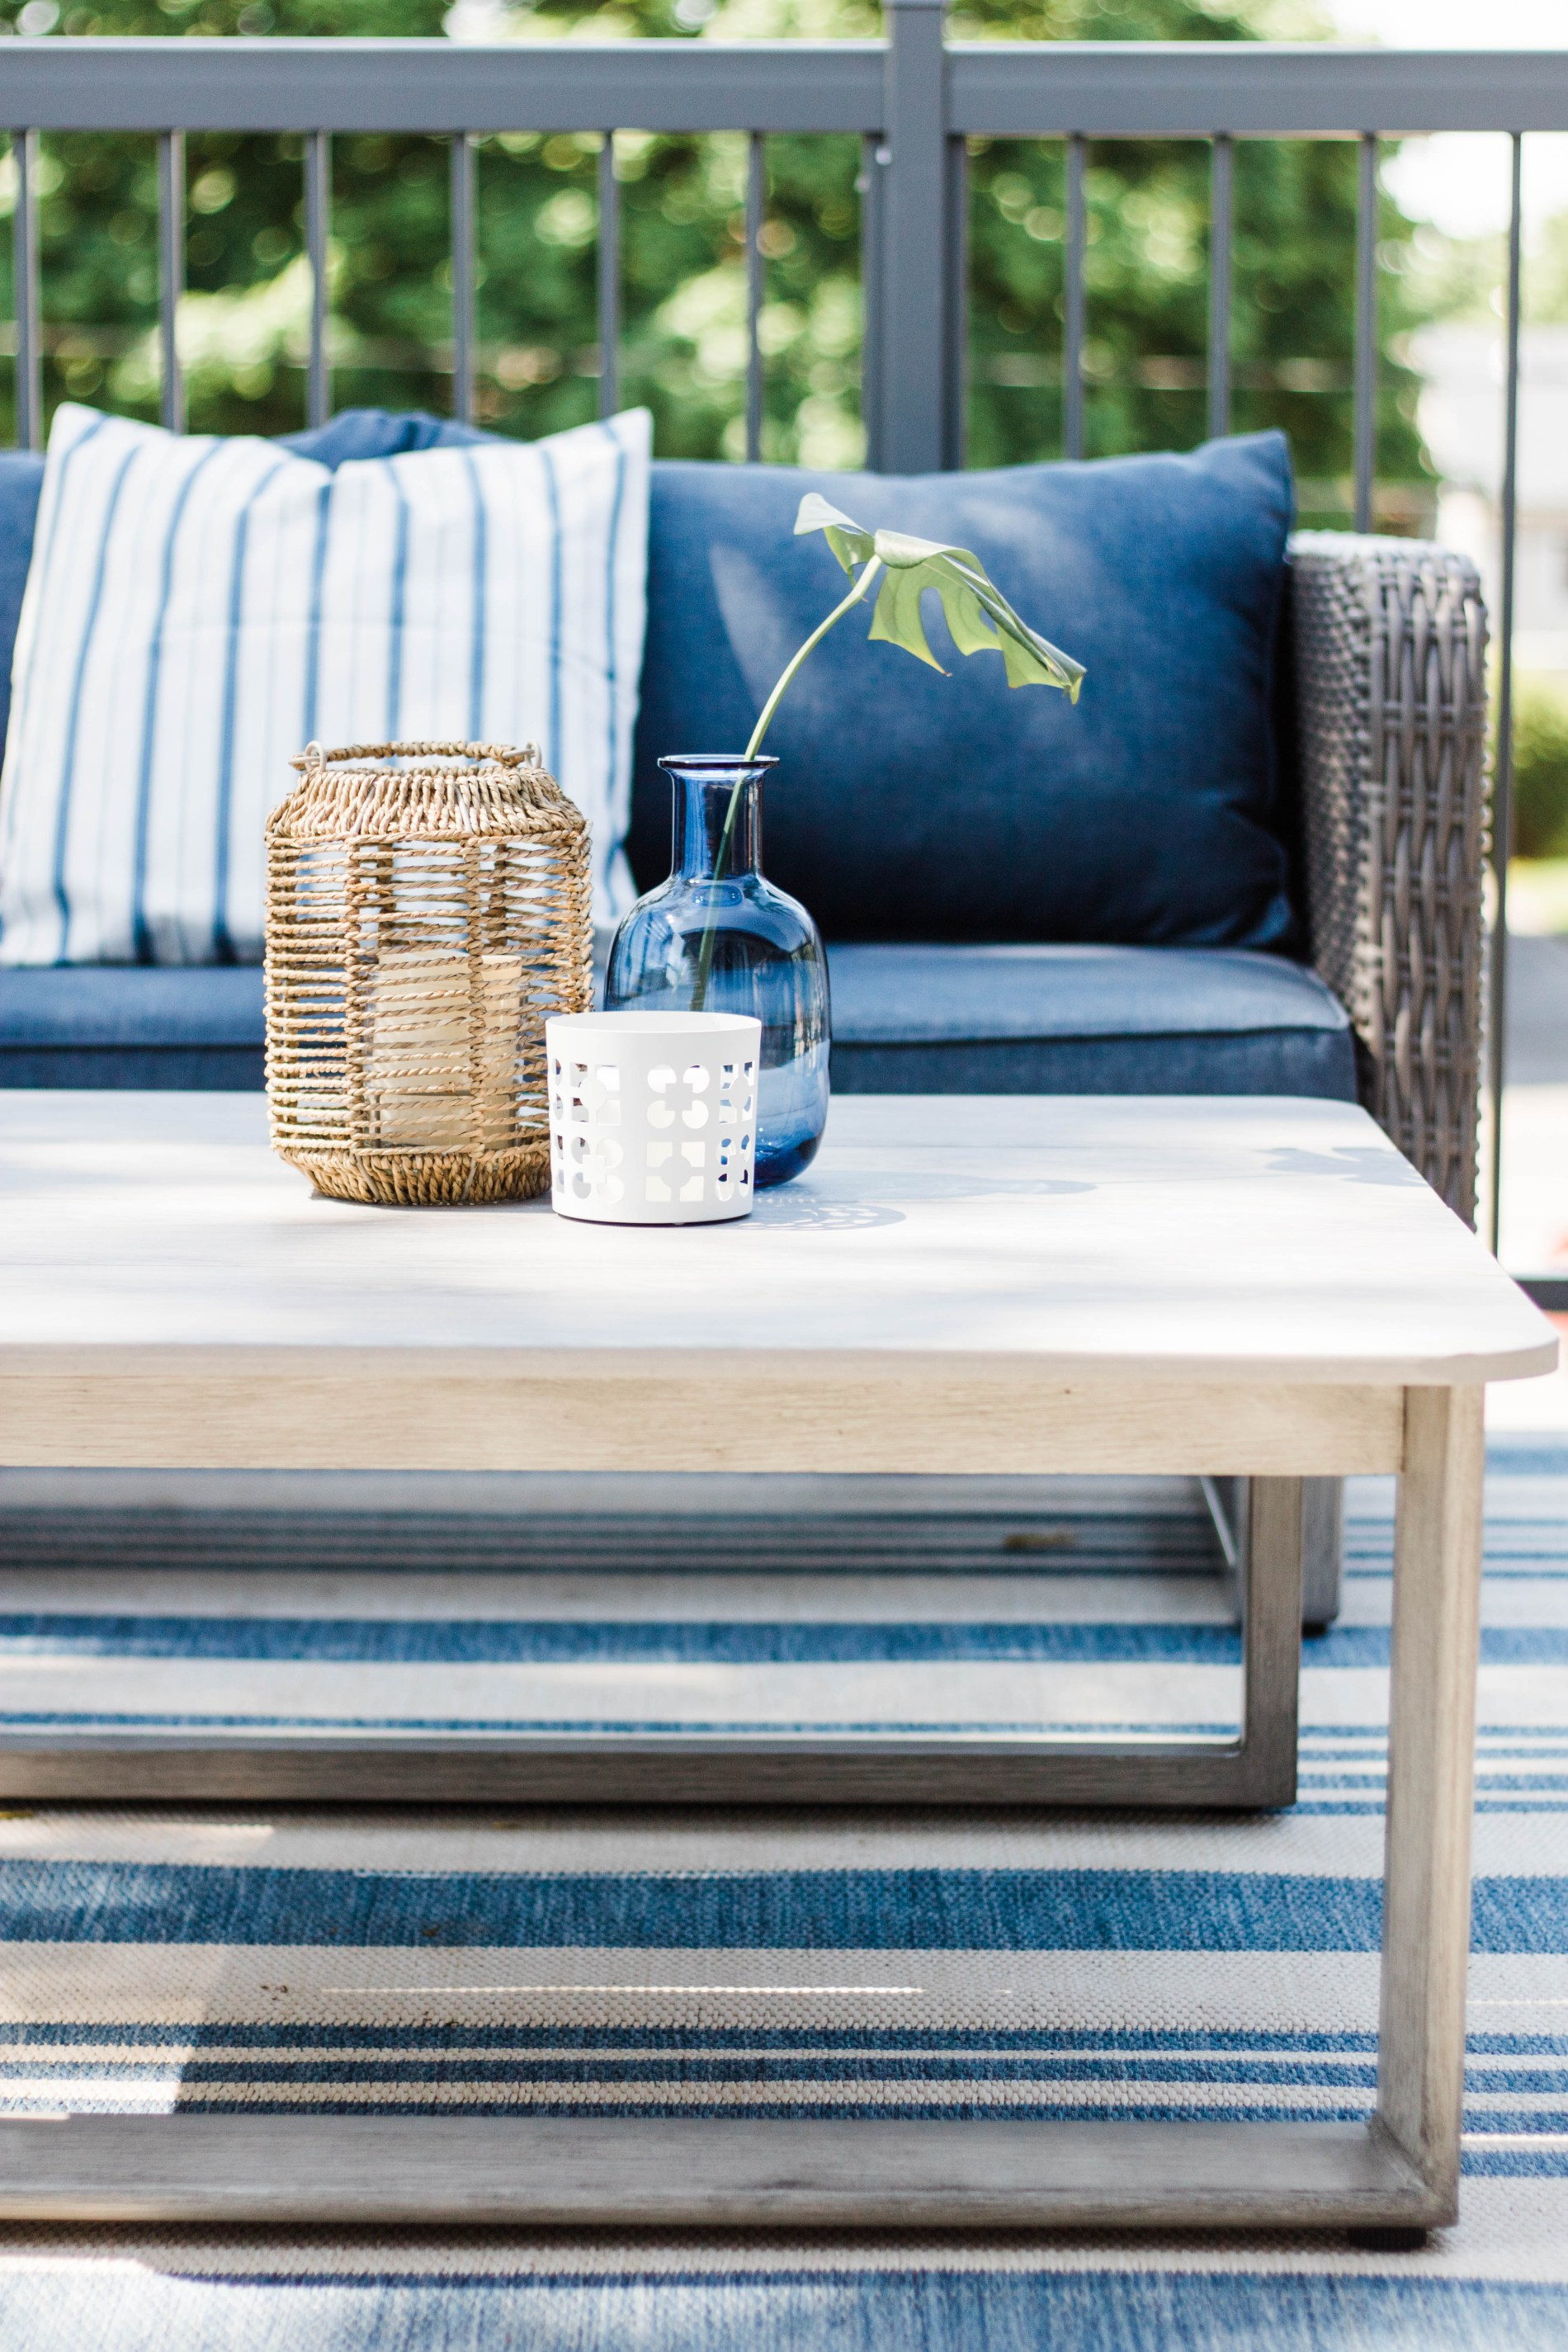 Patio Makeover Reveal || Patio ideas for a small patio or balcony. #patio #patiodesigns #summer #outdoorspace #modernoutdoorspace